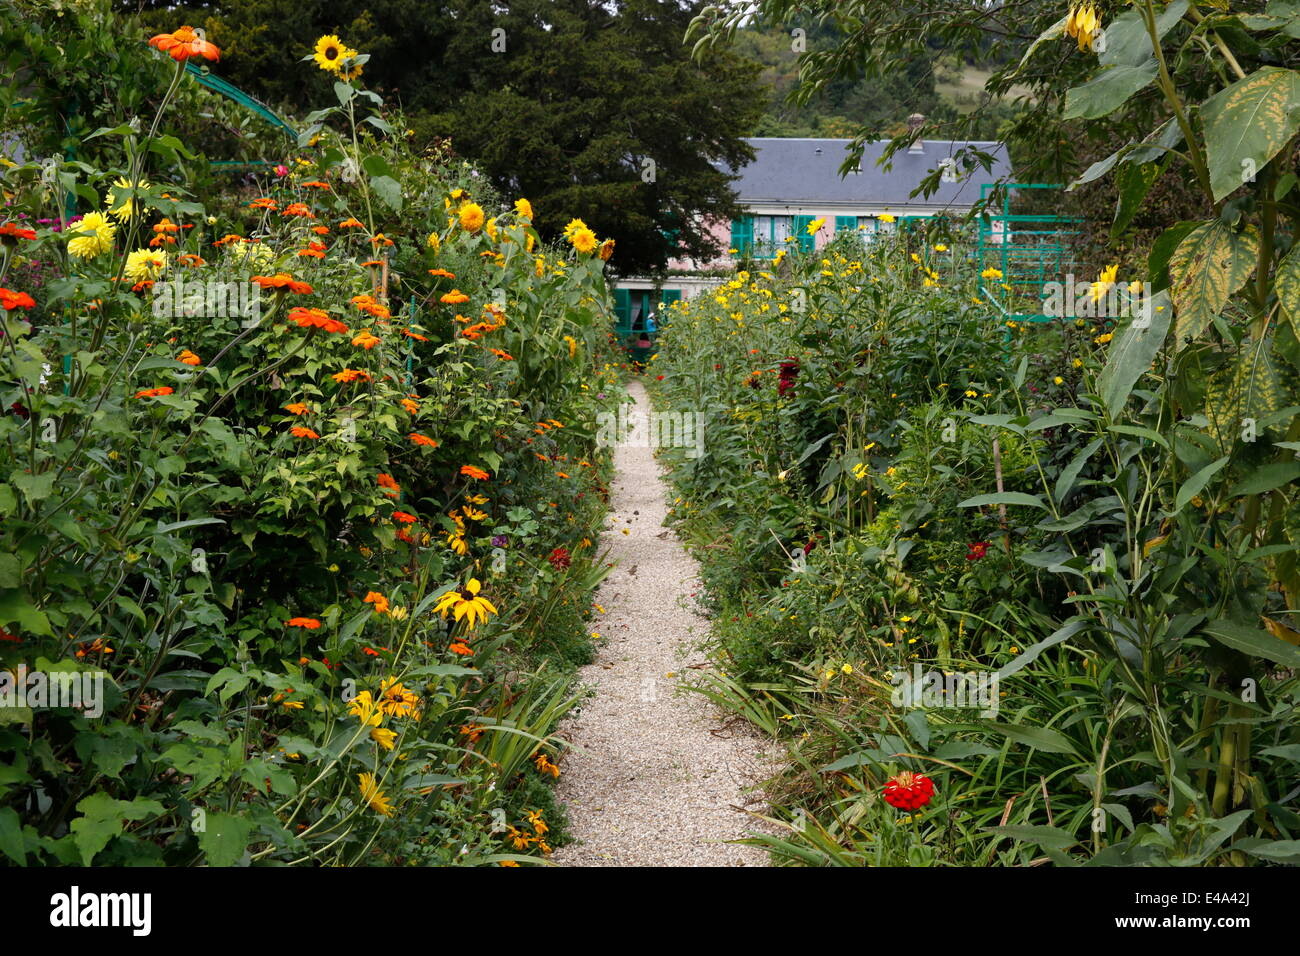 Monet's garden in Giverny, Yvelines, Normandy, France, Europe - Stock Image